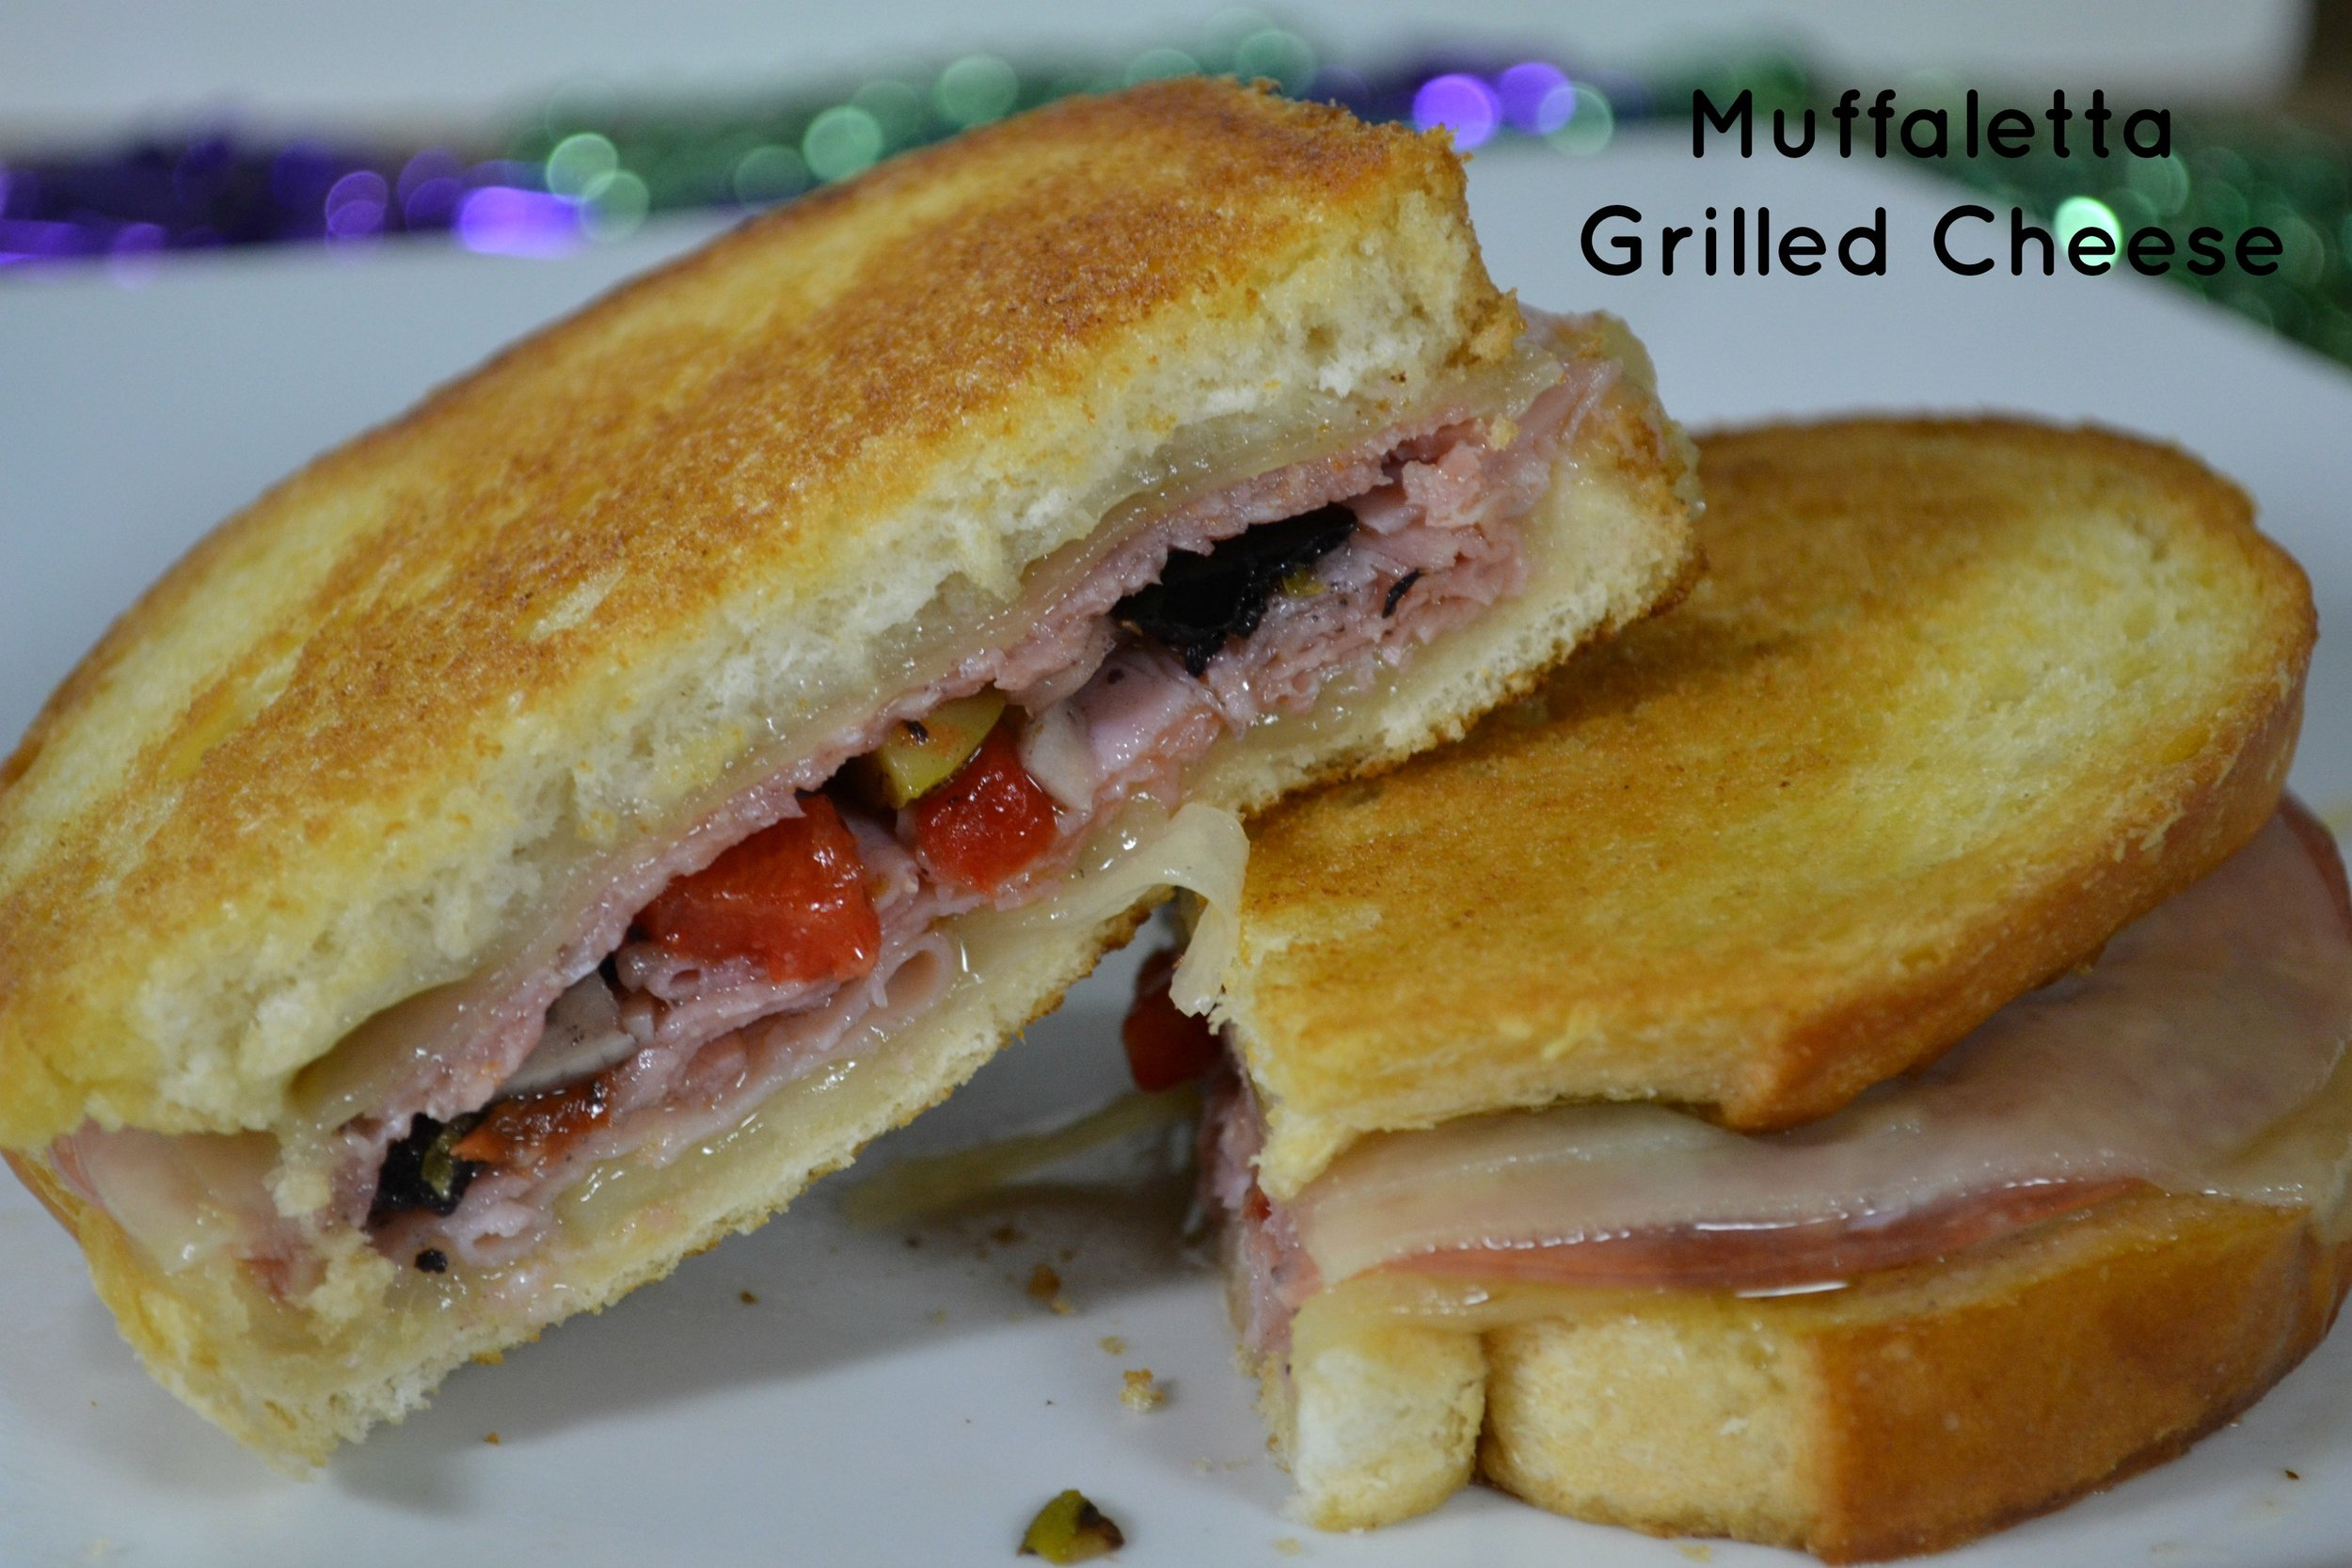 muffaletta grilled cheese